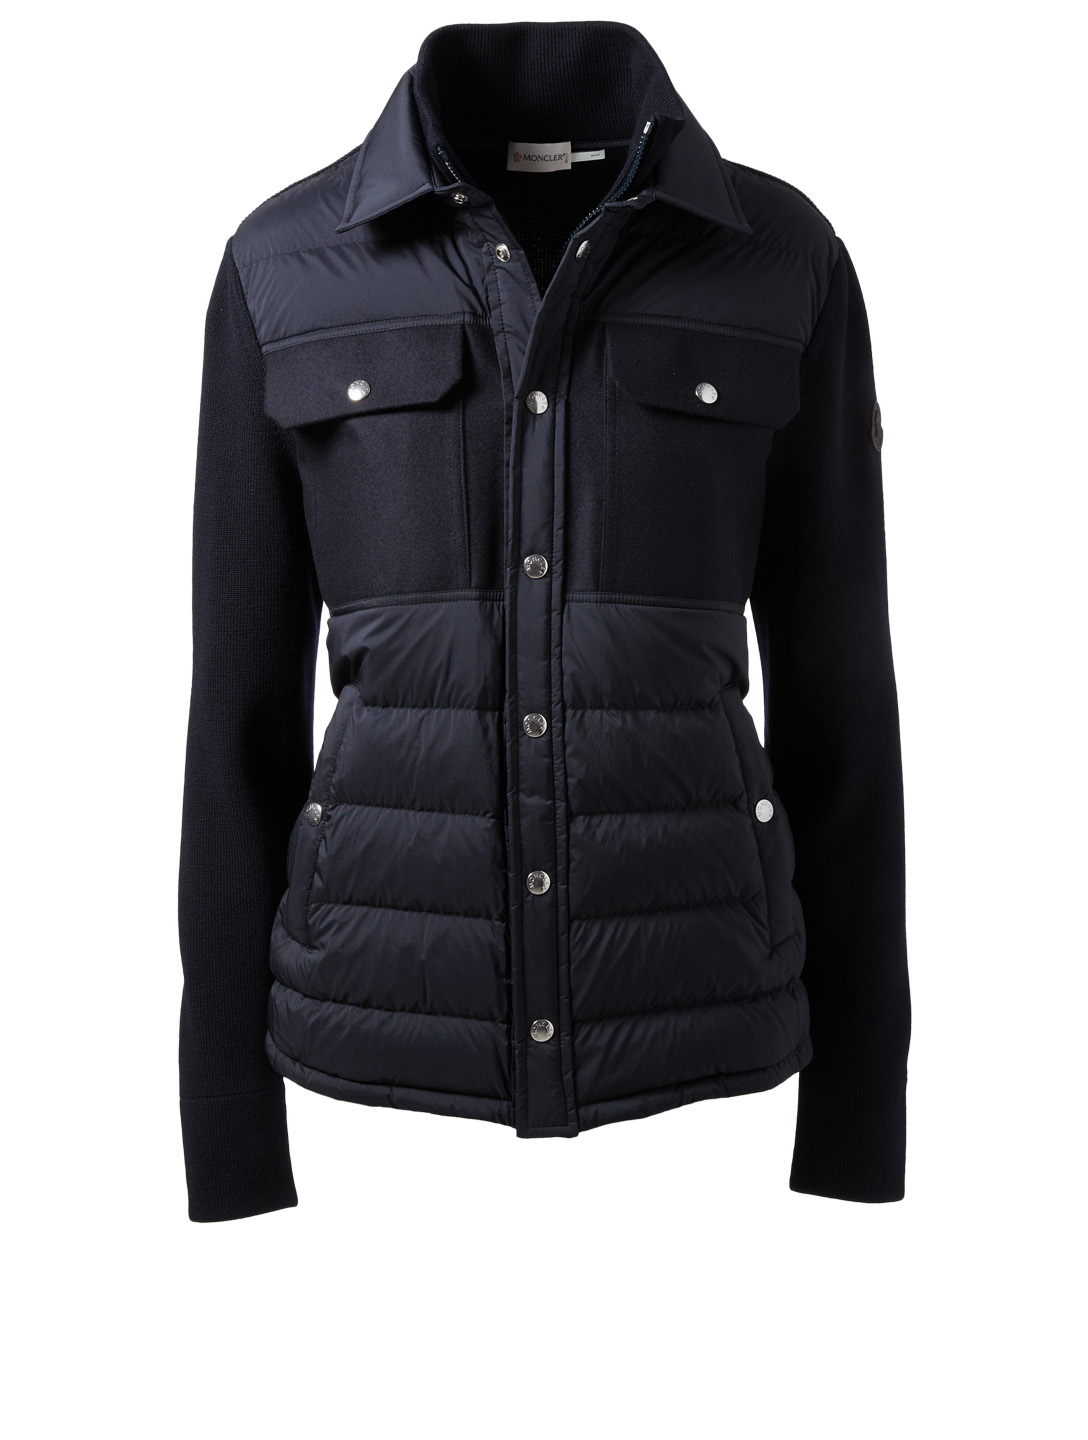 MONCLER Mixed Media Down Jacket Men's Blue